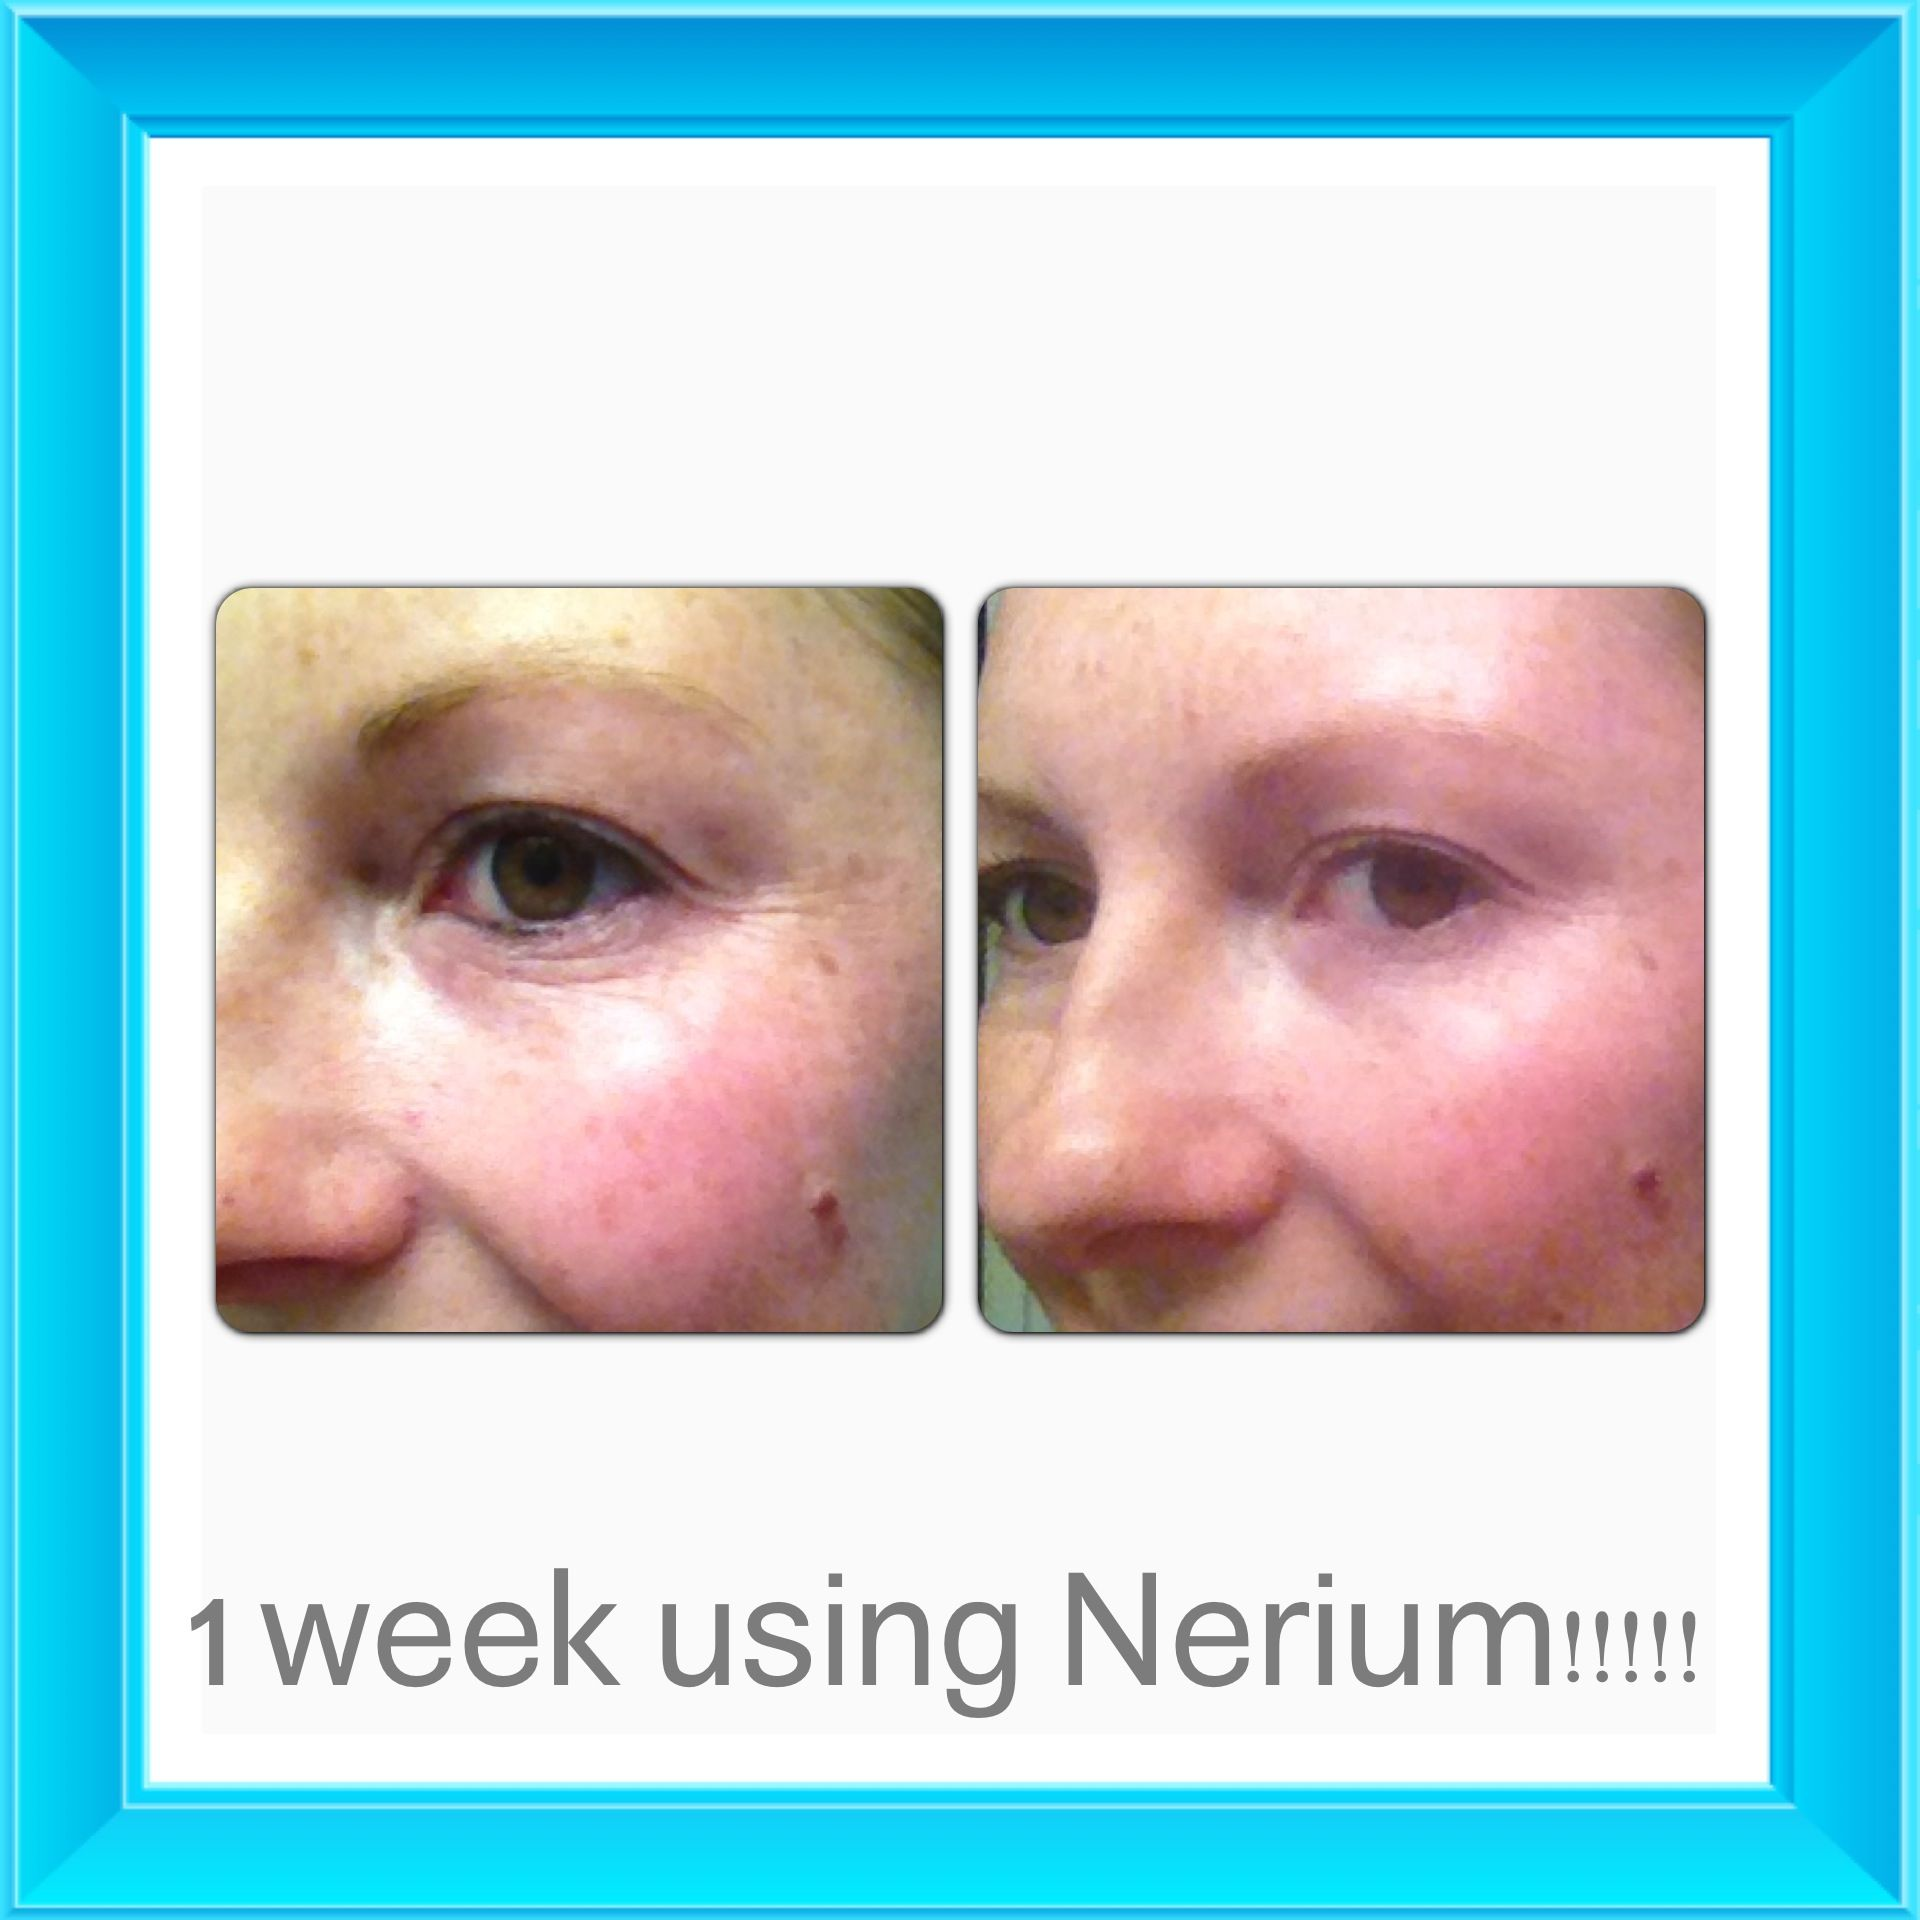 Nerium AD Side Effects